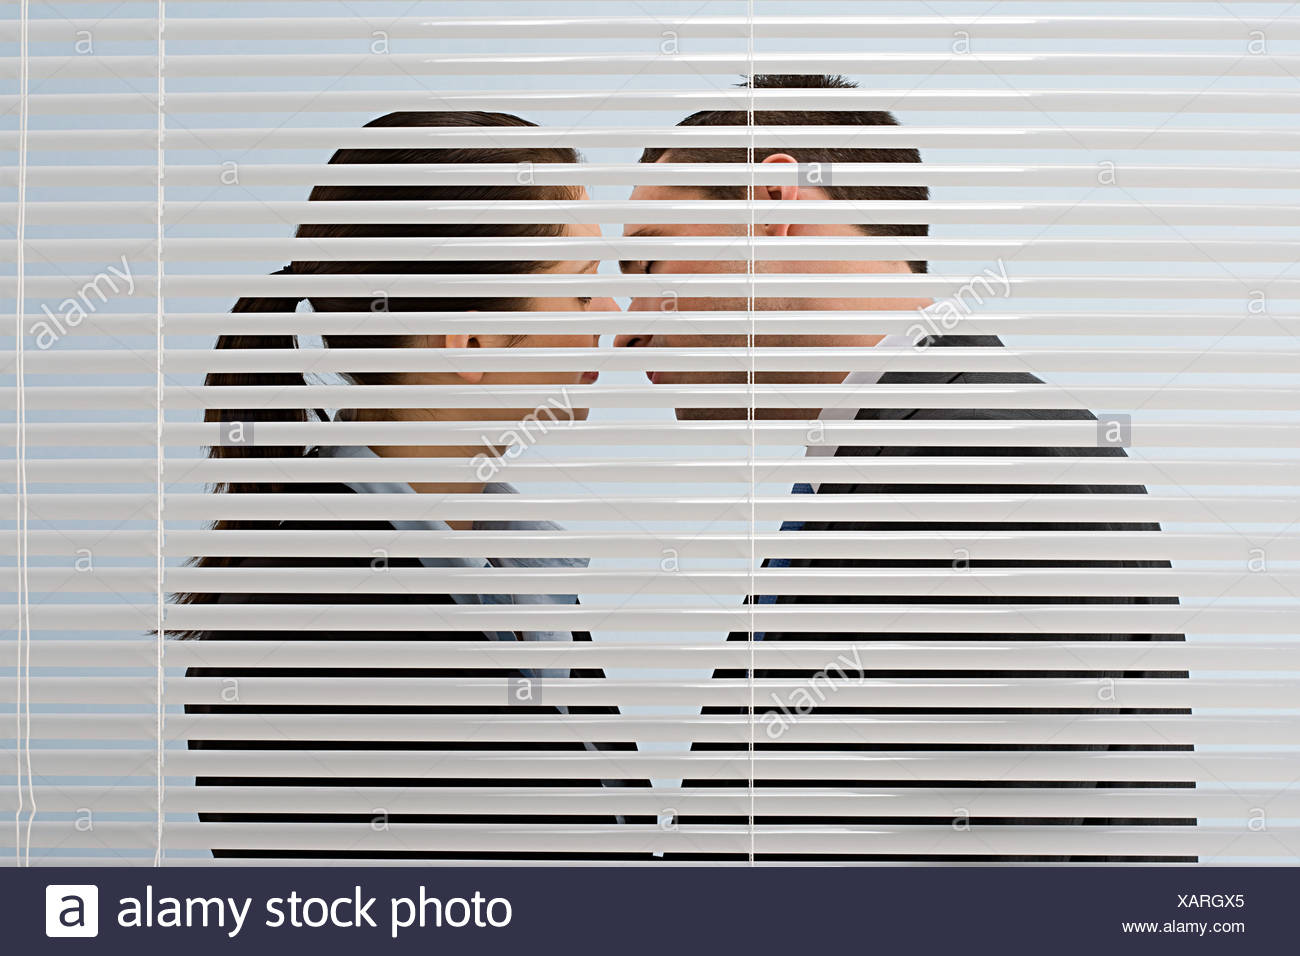 Office workers kissing - Stock Image